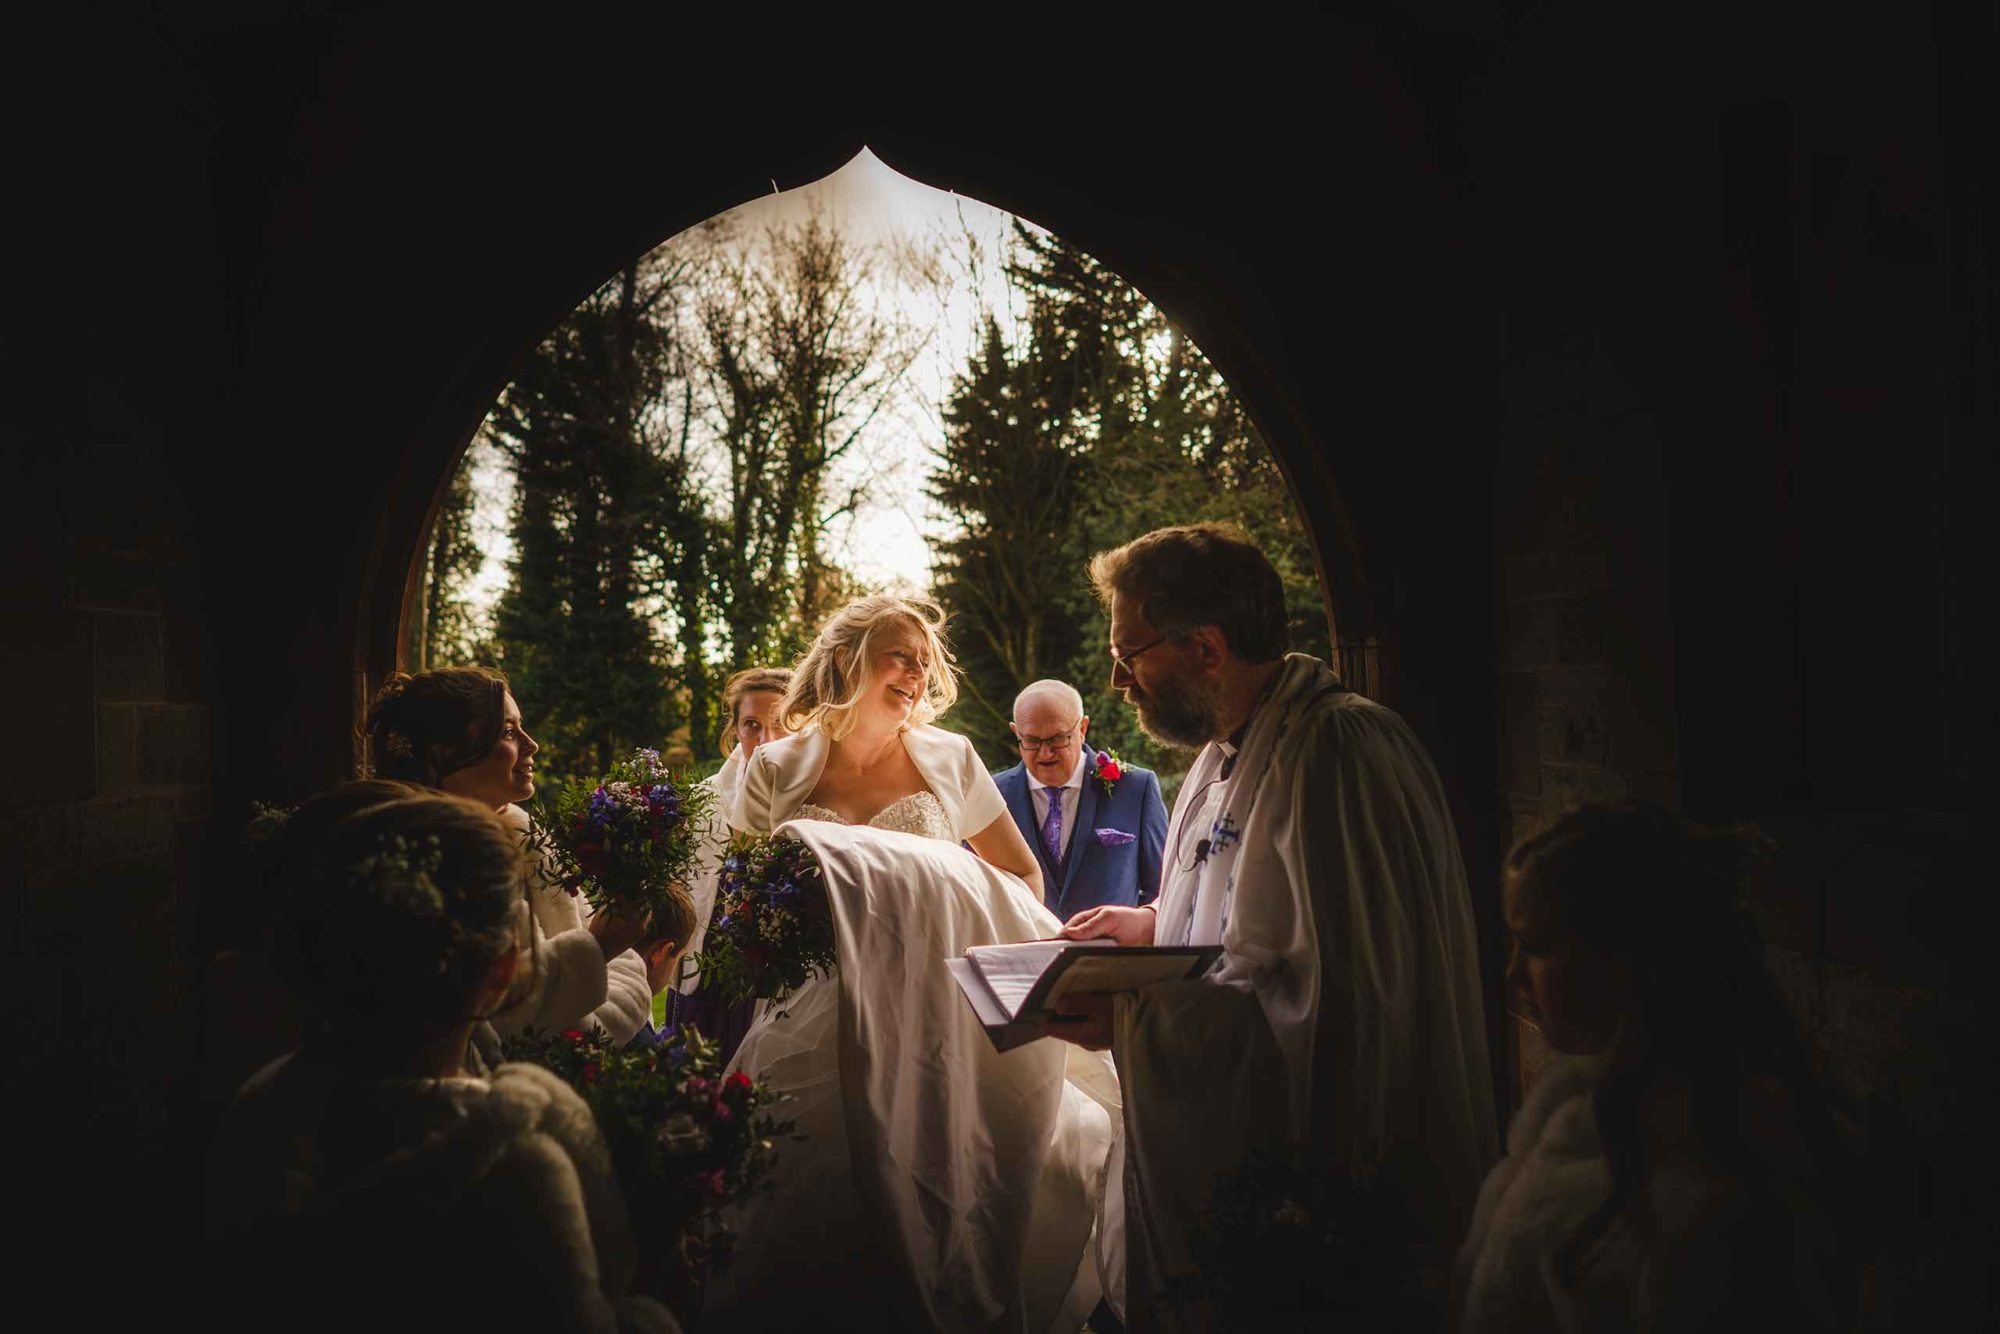 shropshire wedding and portrait photographer captures bride entering church